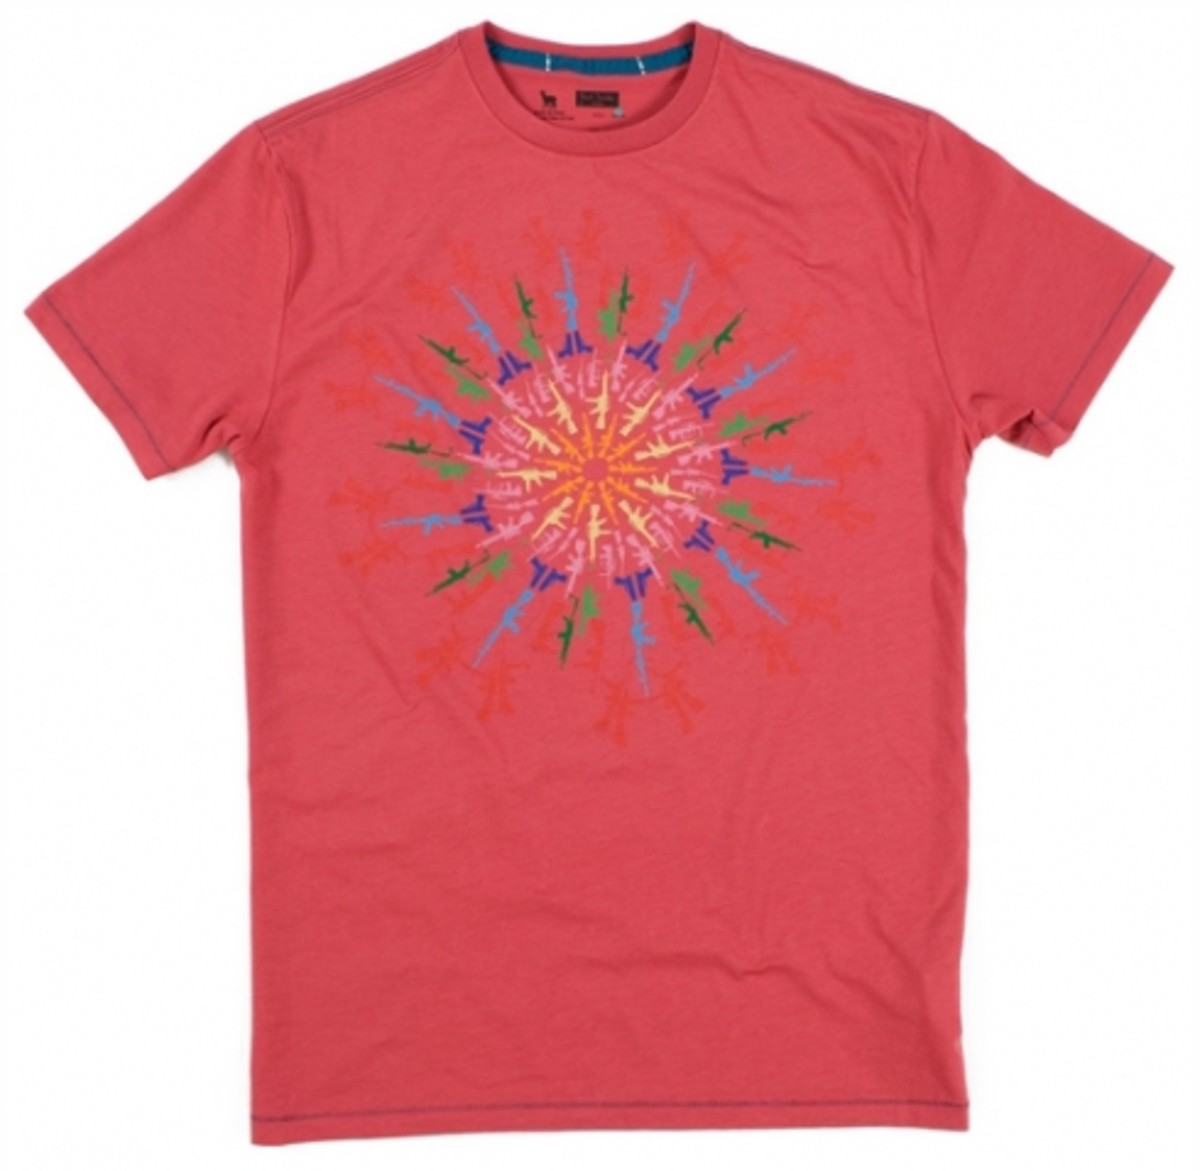 Paul Smith Jeans - War Child Charity T-Shirts